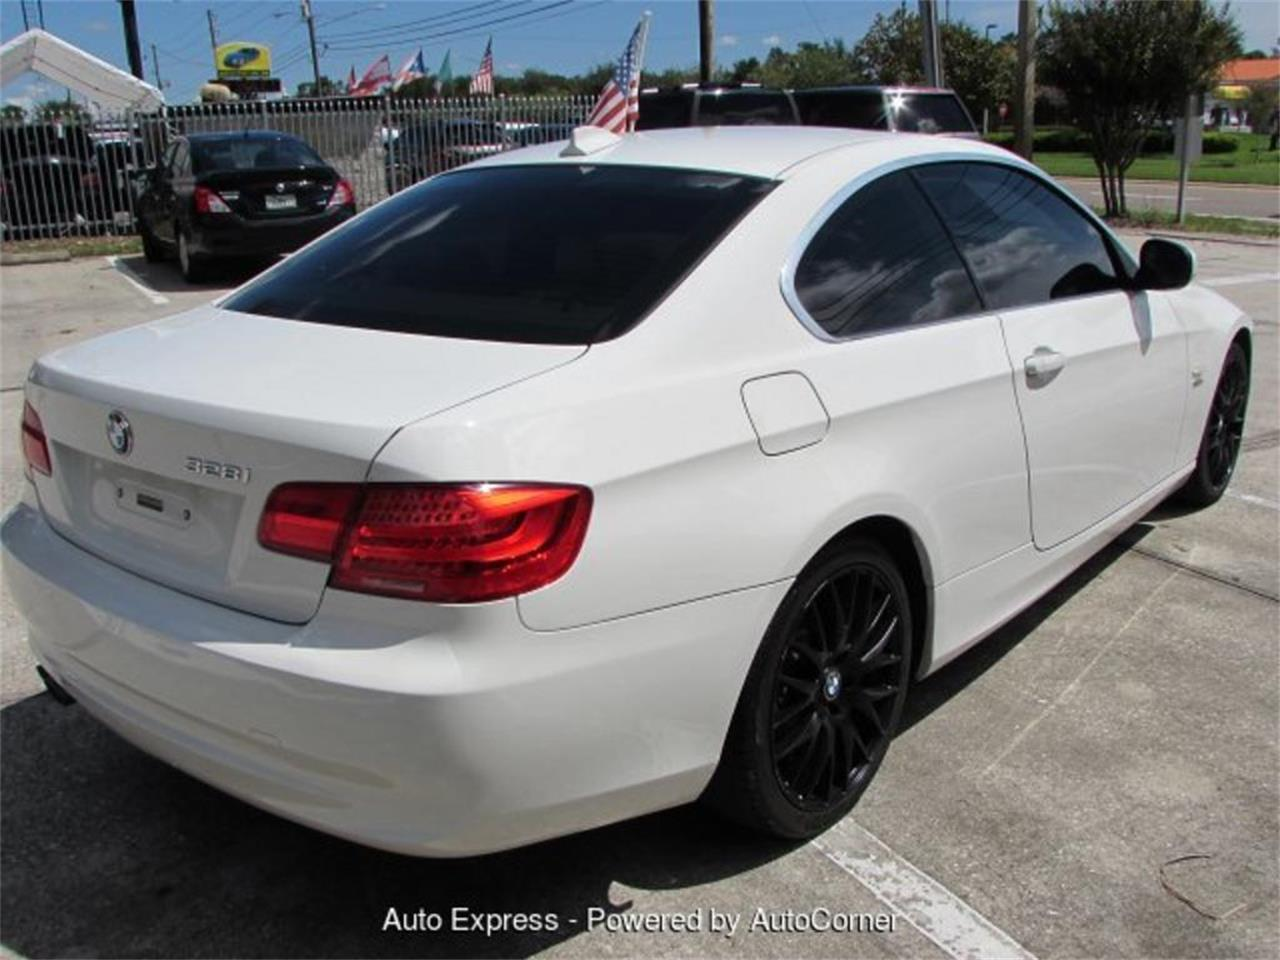 Large Picture of '11 BMW 3 Series located in Orlando Florida - $10,950.00 - Q2AO